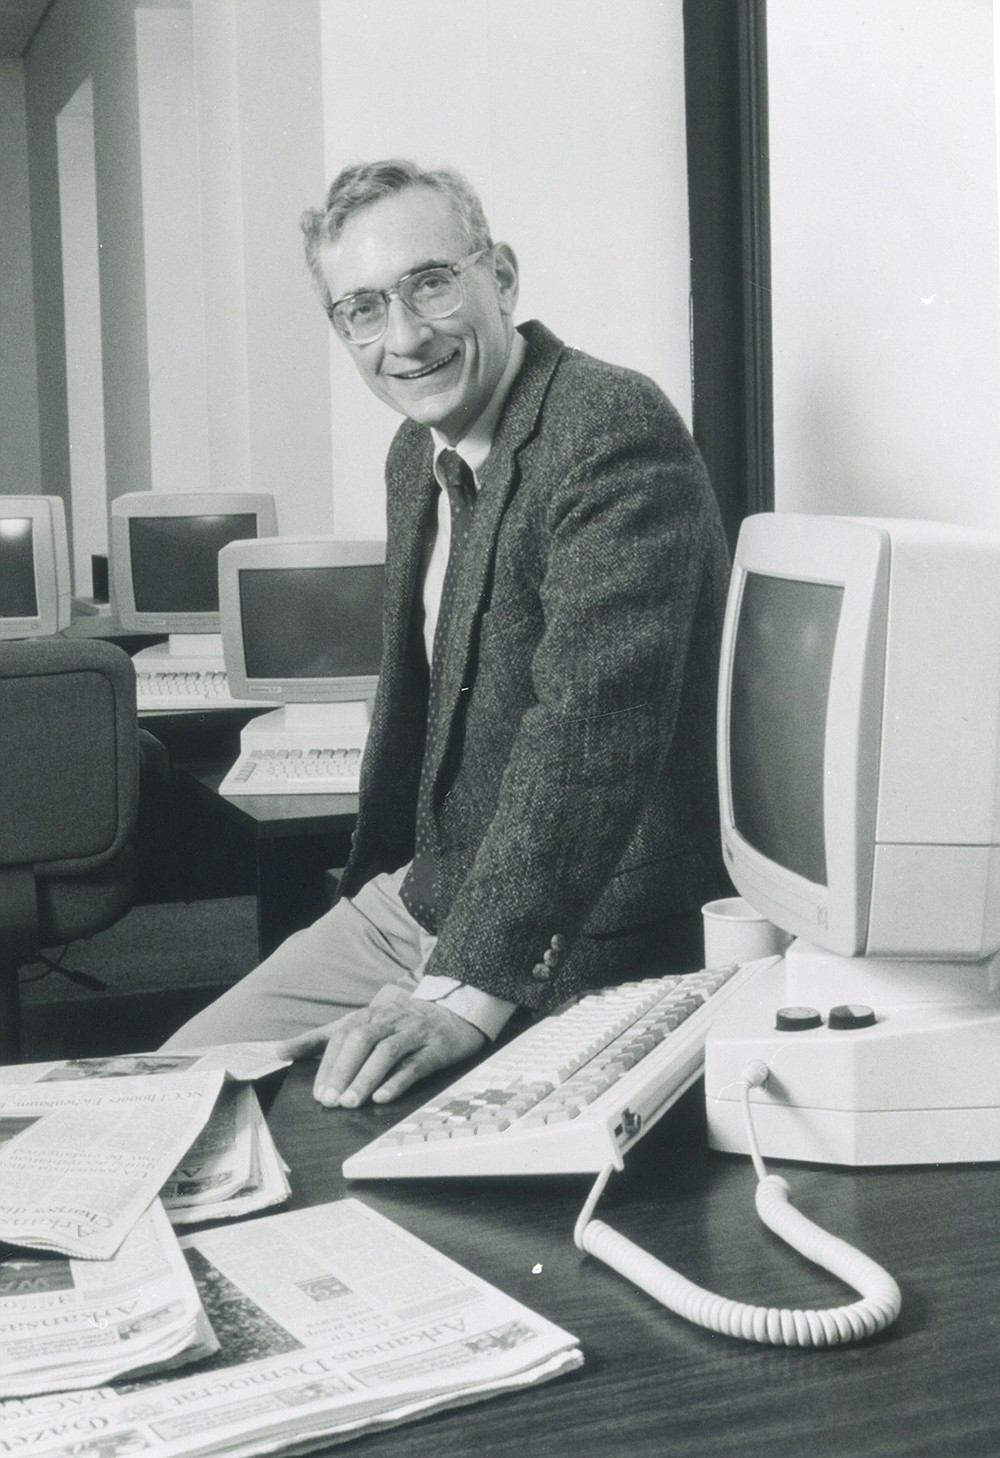 Paul Greenberg said his first job away from college was with the Pine Bluff Commercial. Hired in 1962 at age 25, he said he thought he would spend a year at the job. He stayed on for decades, winning the Pulitzer Prize in 1969 for editorials about civil rights. (Democrat-Gazette file photo)